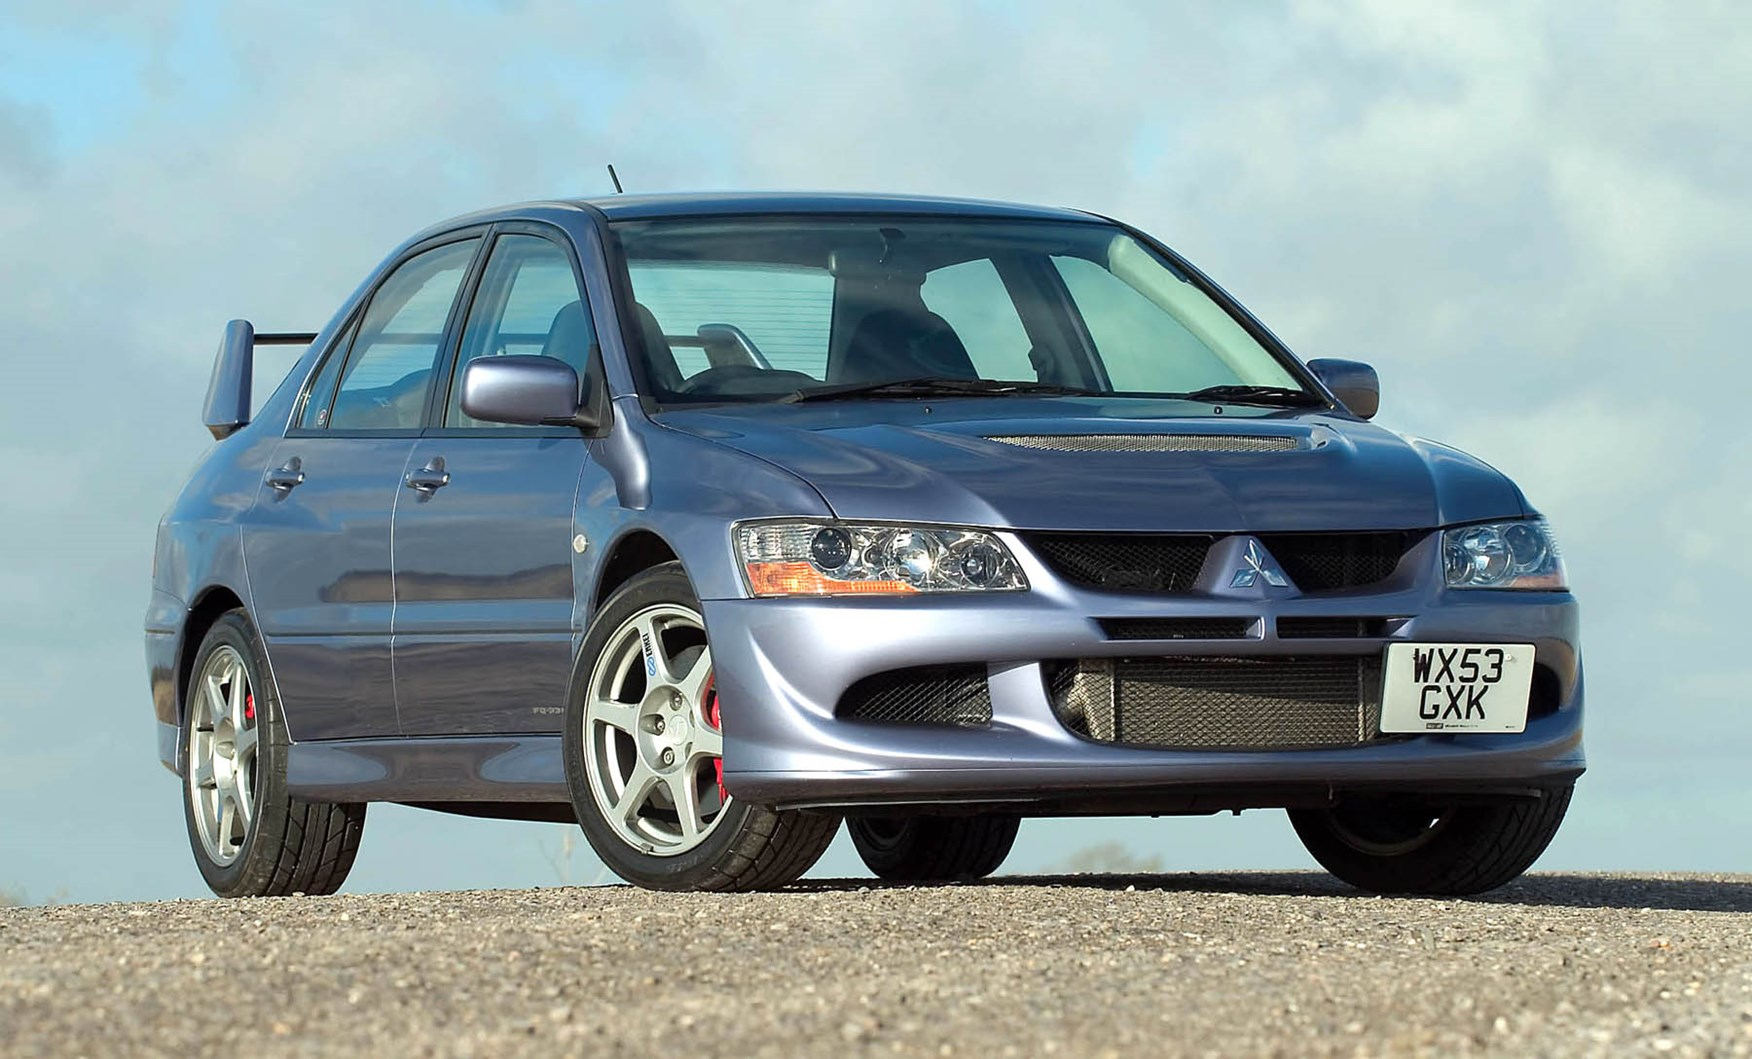 Mitsubishi Lancer Evo Viii Review 2003 2005 Parkers 2015 Eclipse Efficiency And Velocity Best Auto Insurance How Much Is It To Insure